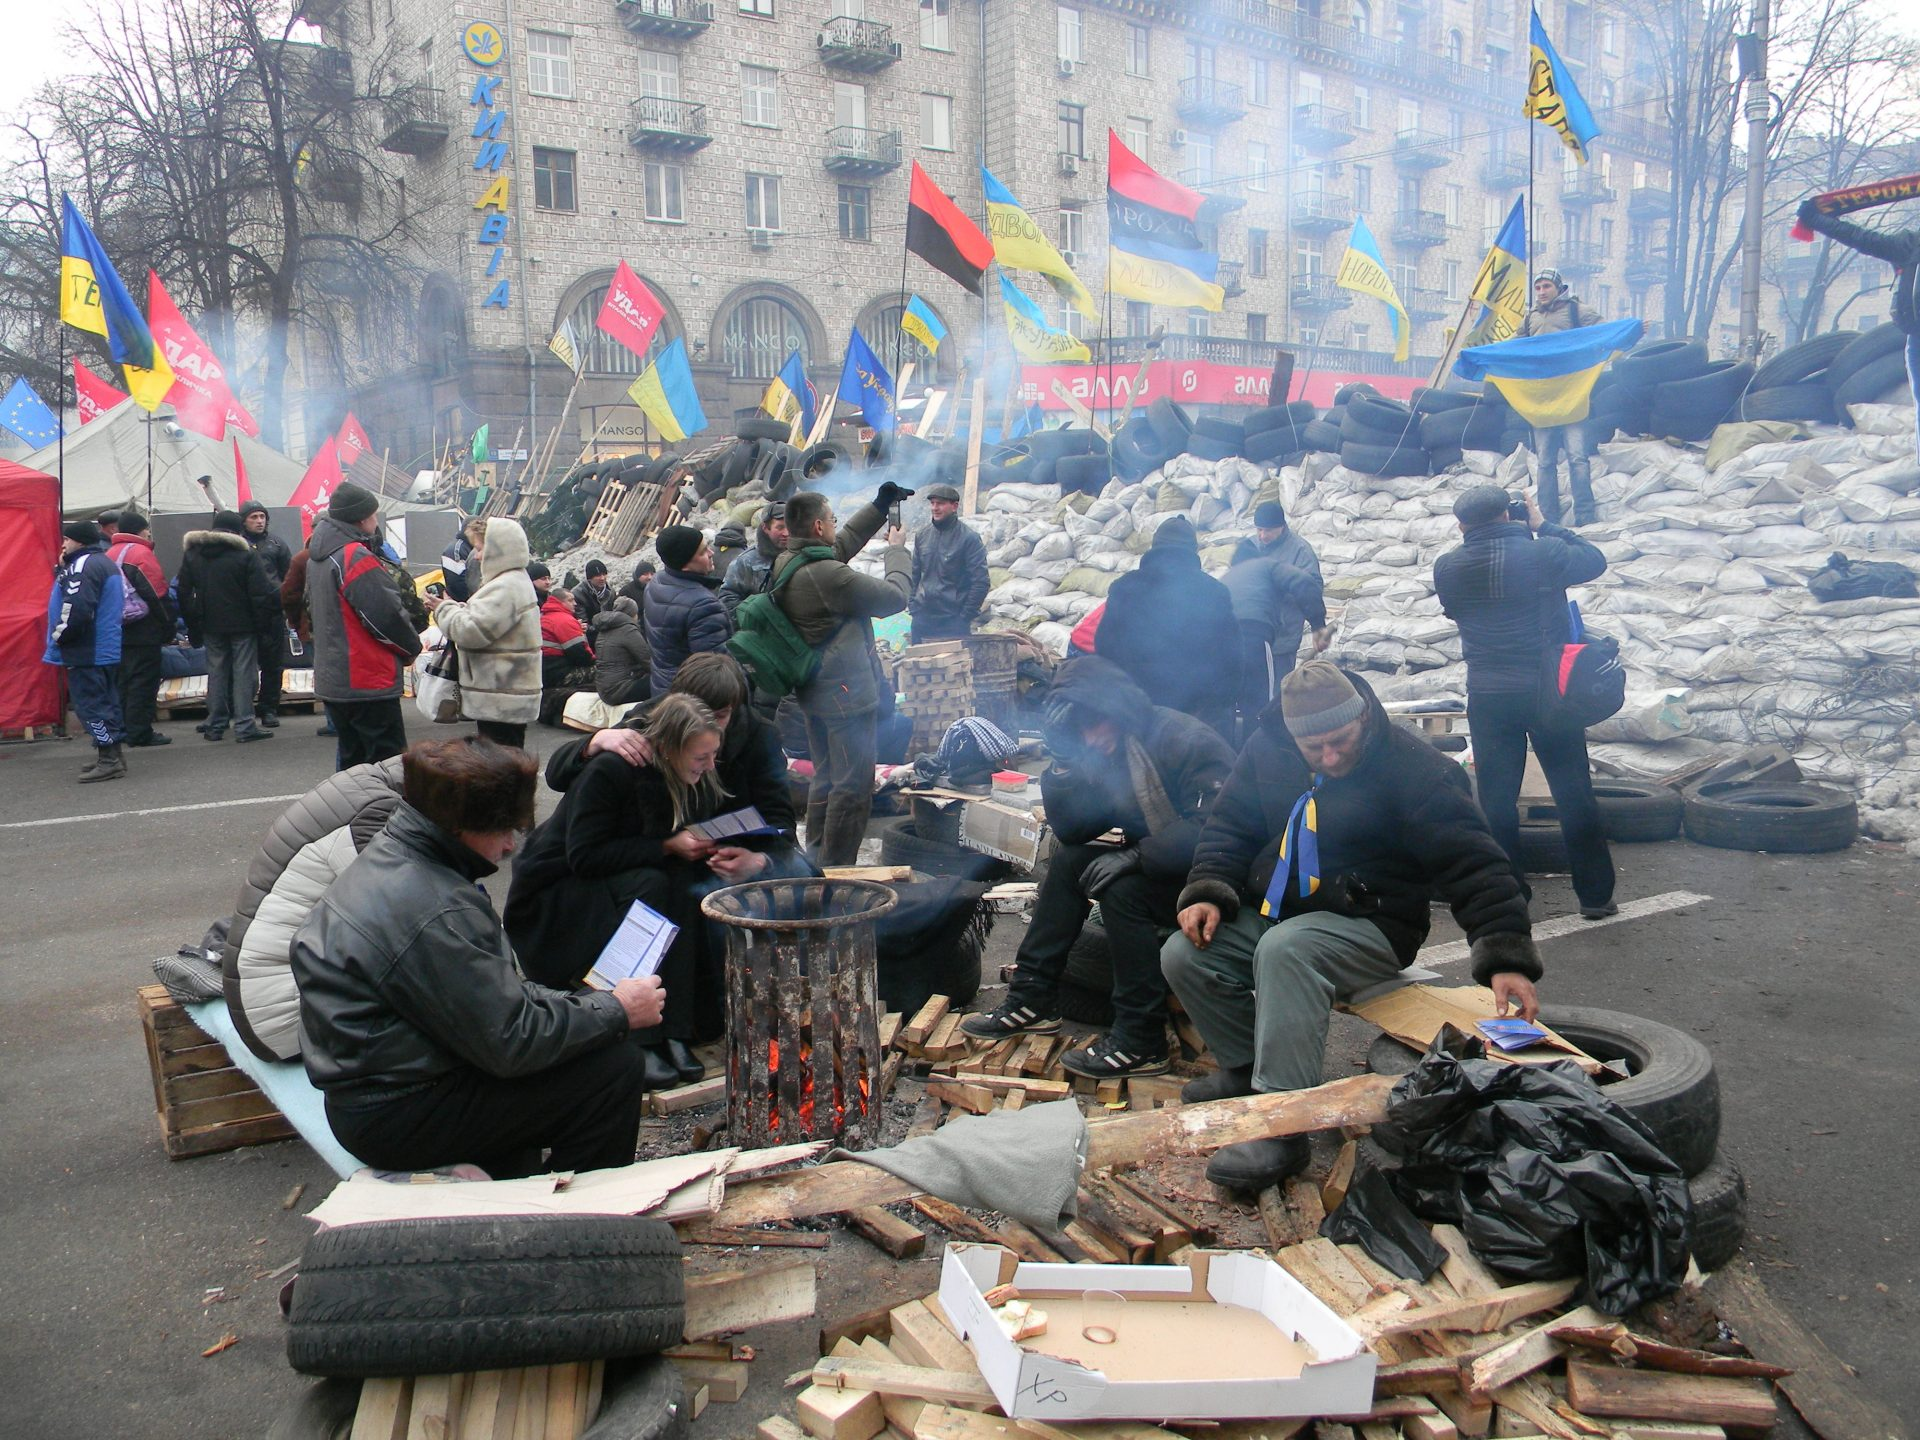 Intimate Chronologies of the Euromaidan: Interview Analysis and Organisation